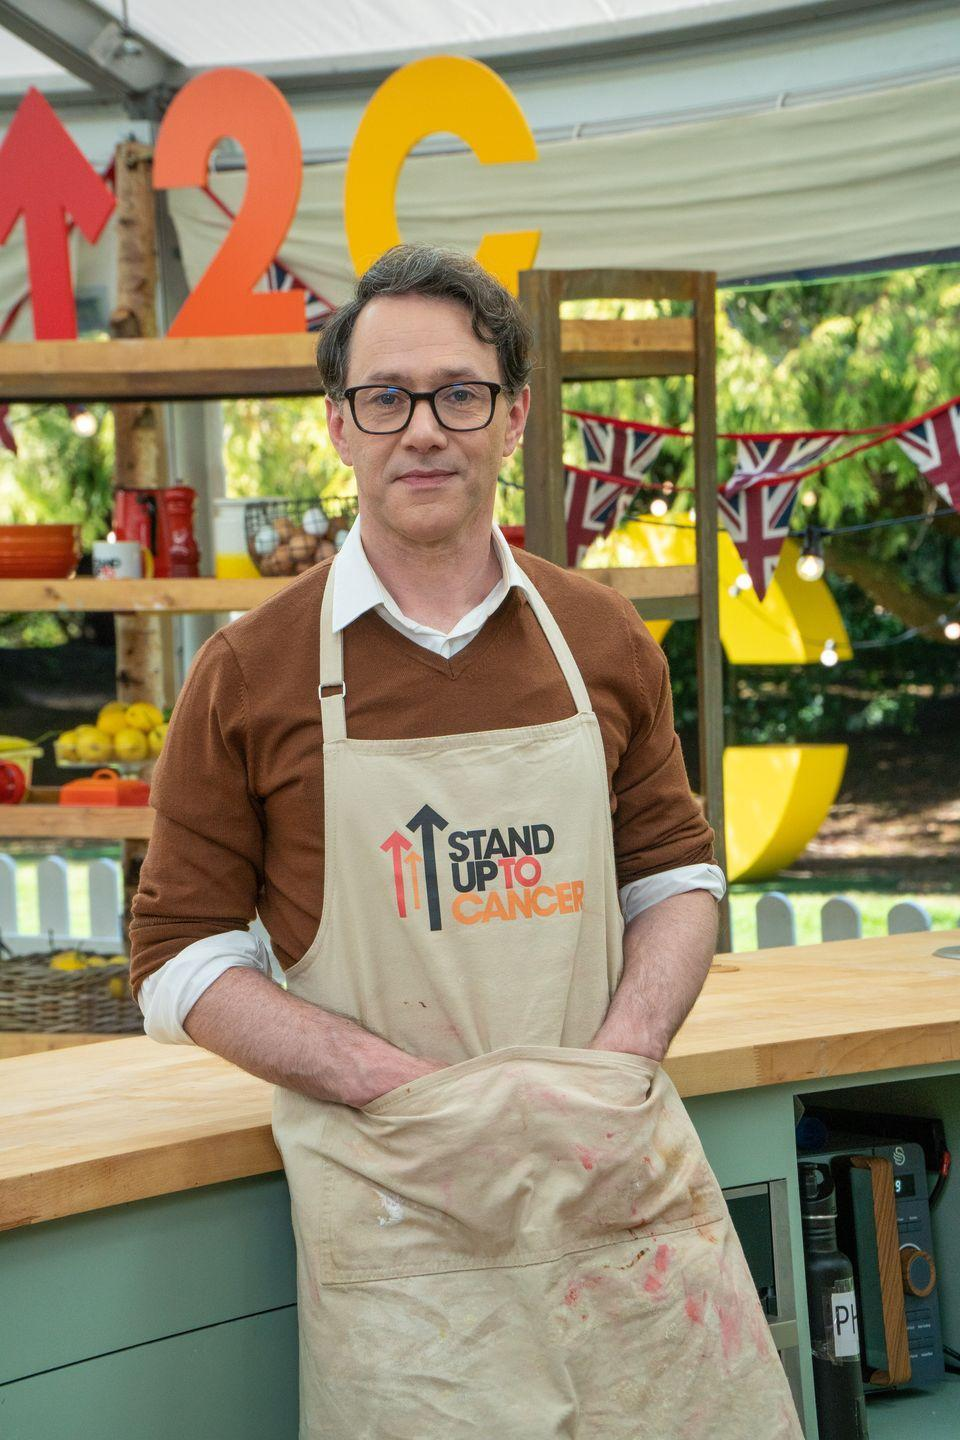 <p>Reece is a writer, actor and comedian, best known for sketch show The League of Gentlemen.</p>